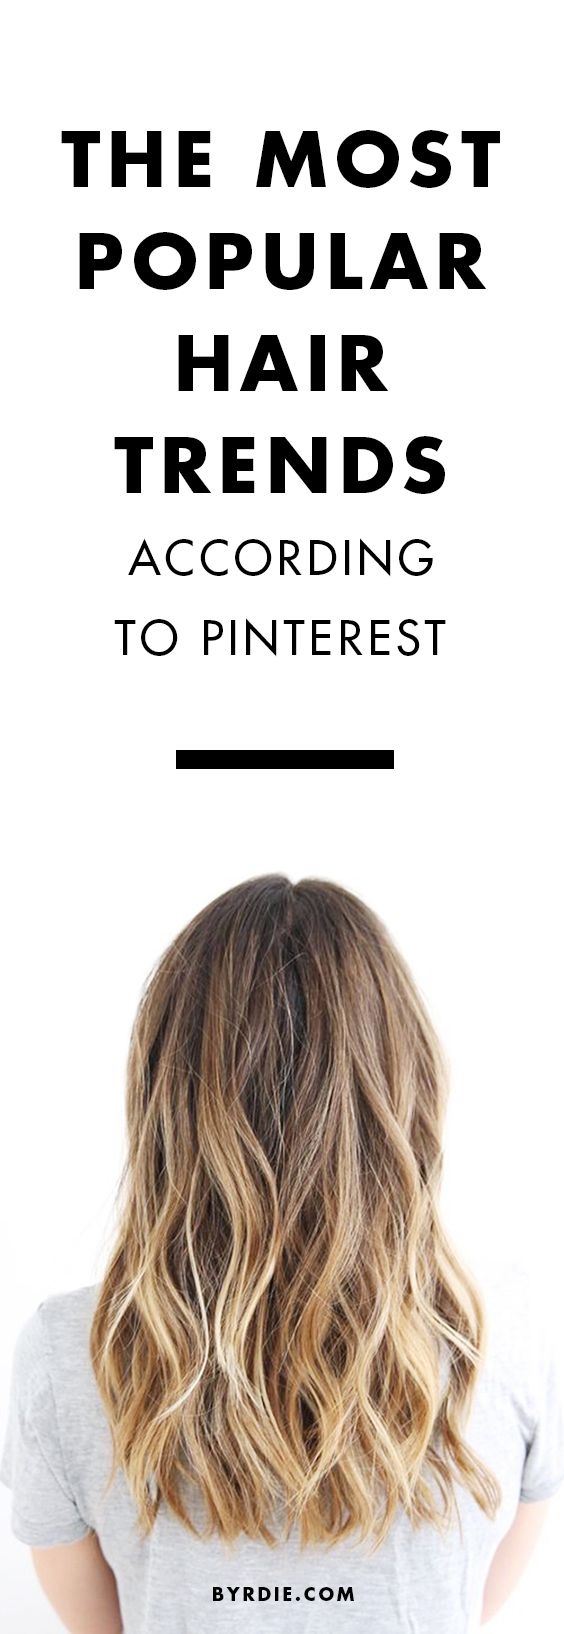 The most popular hair trends on Pinterest